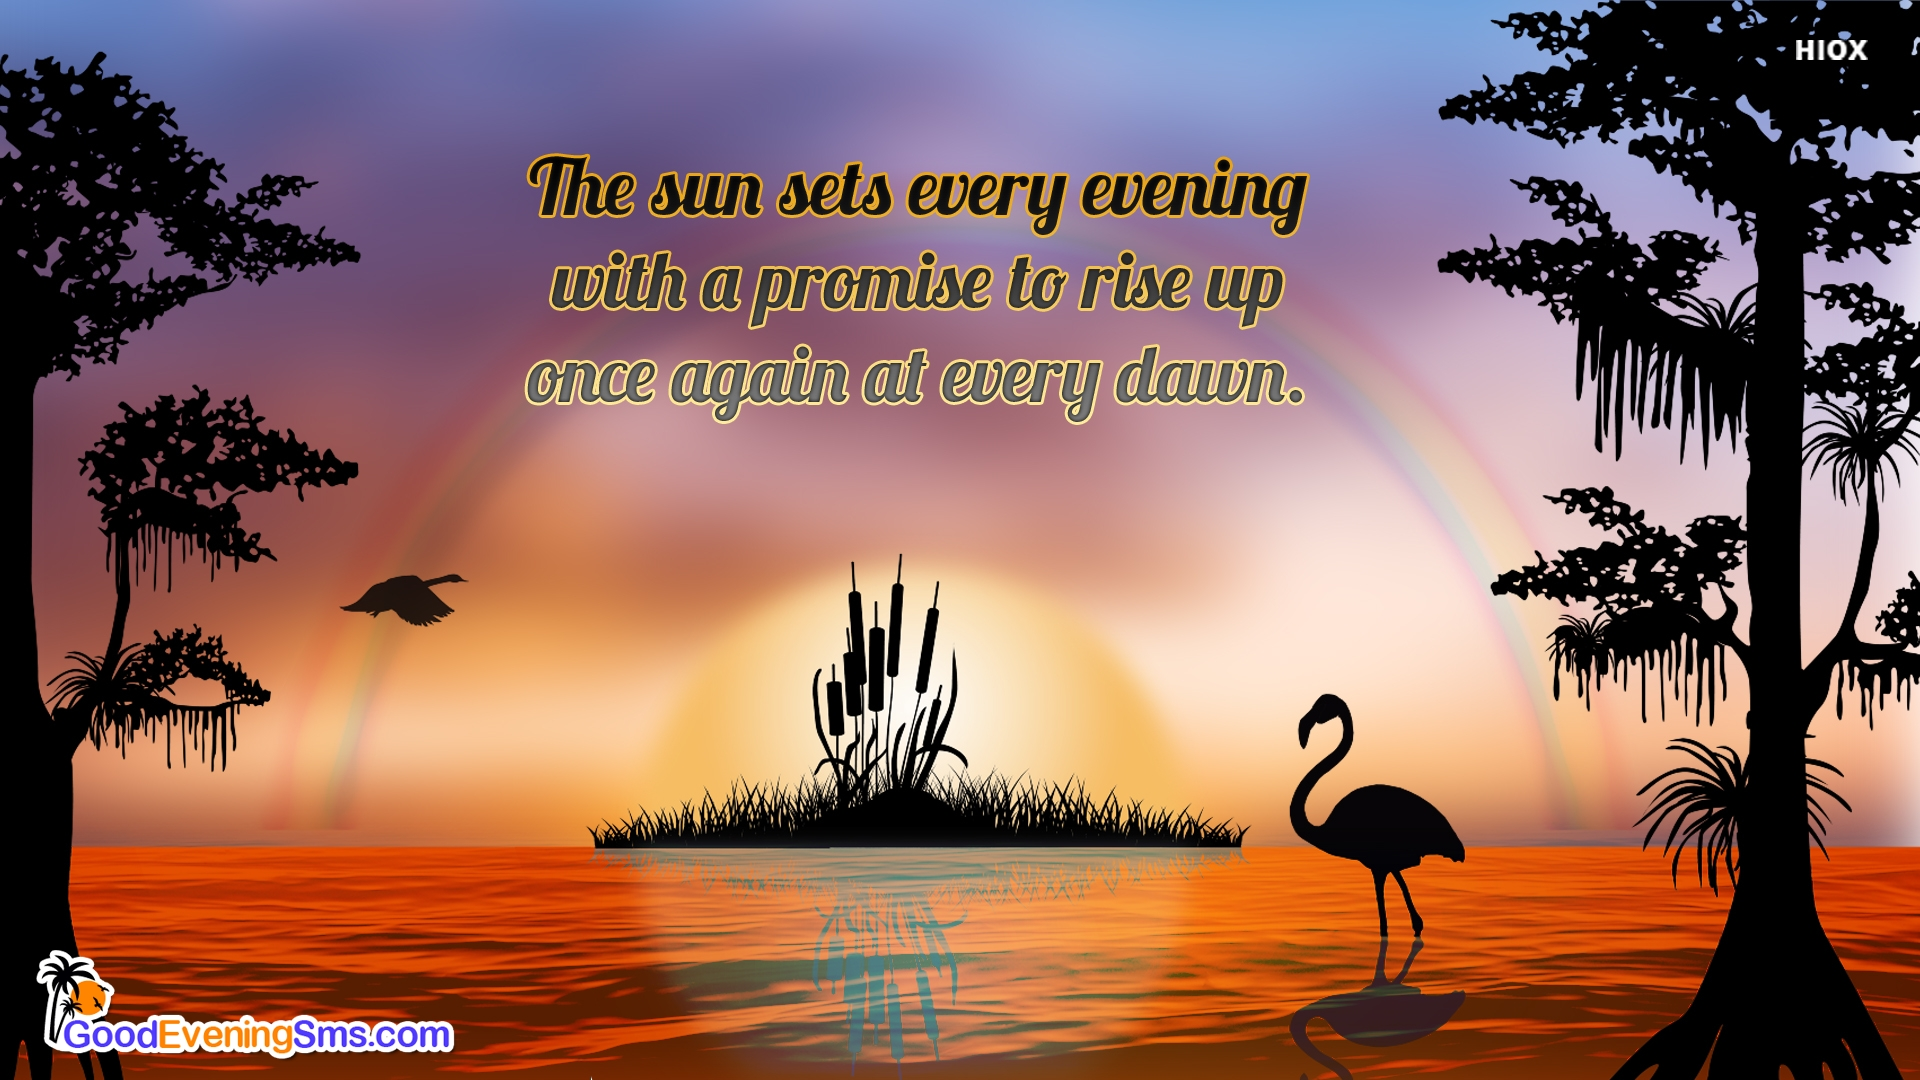 The Sun Sets Every Evening With A Promise To Rise Up Once Again